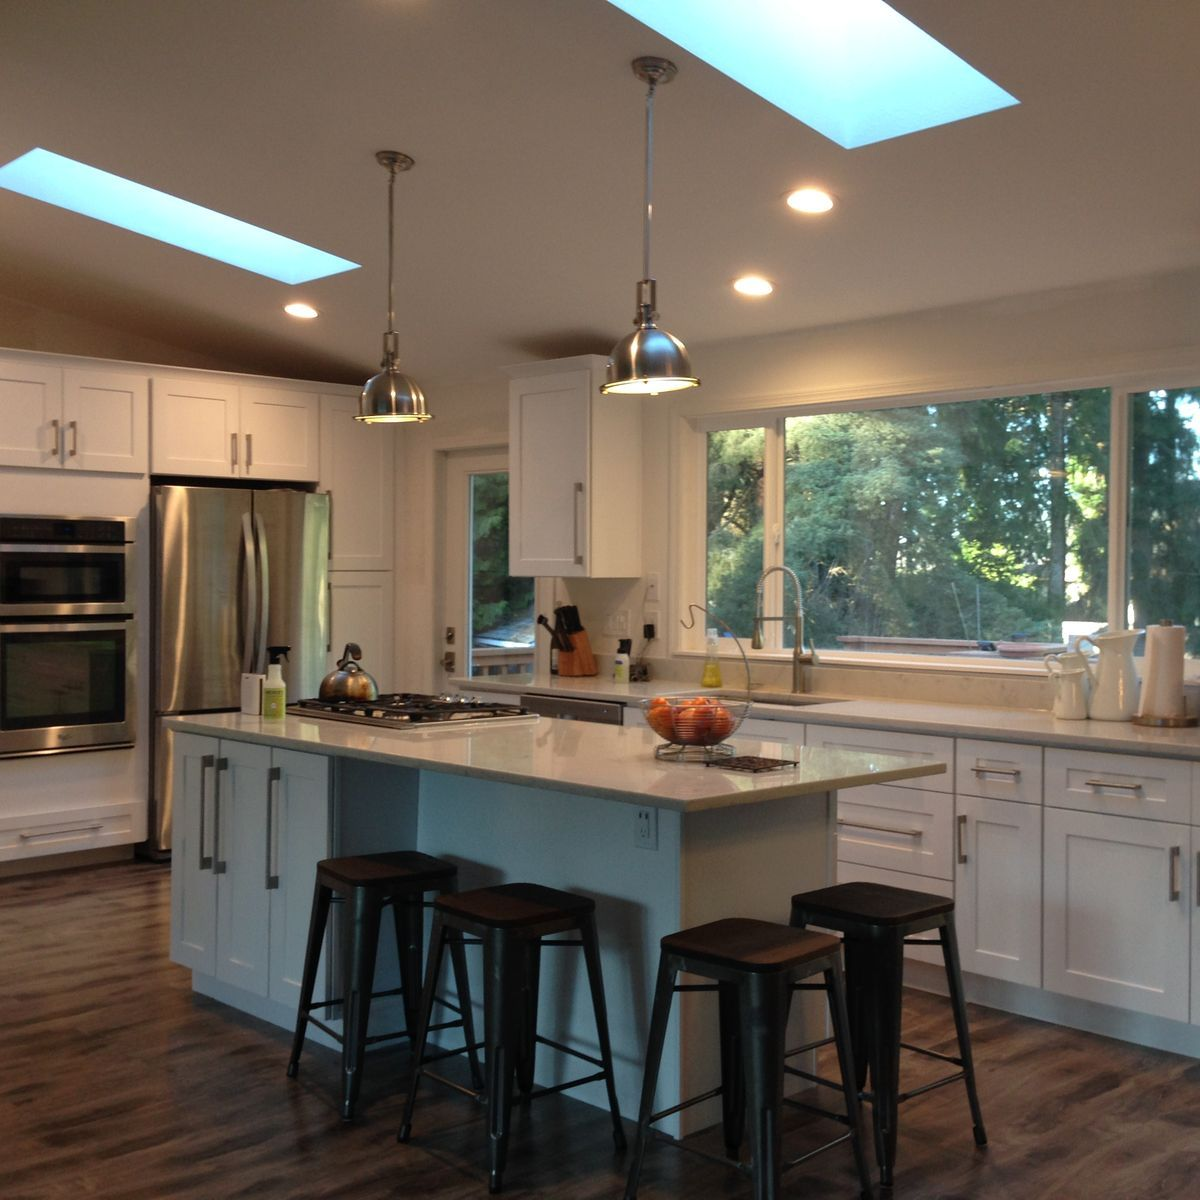 Pin by Phoenix on 23W Off white kitchens, Countertops